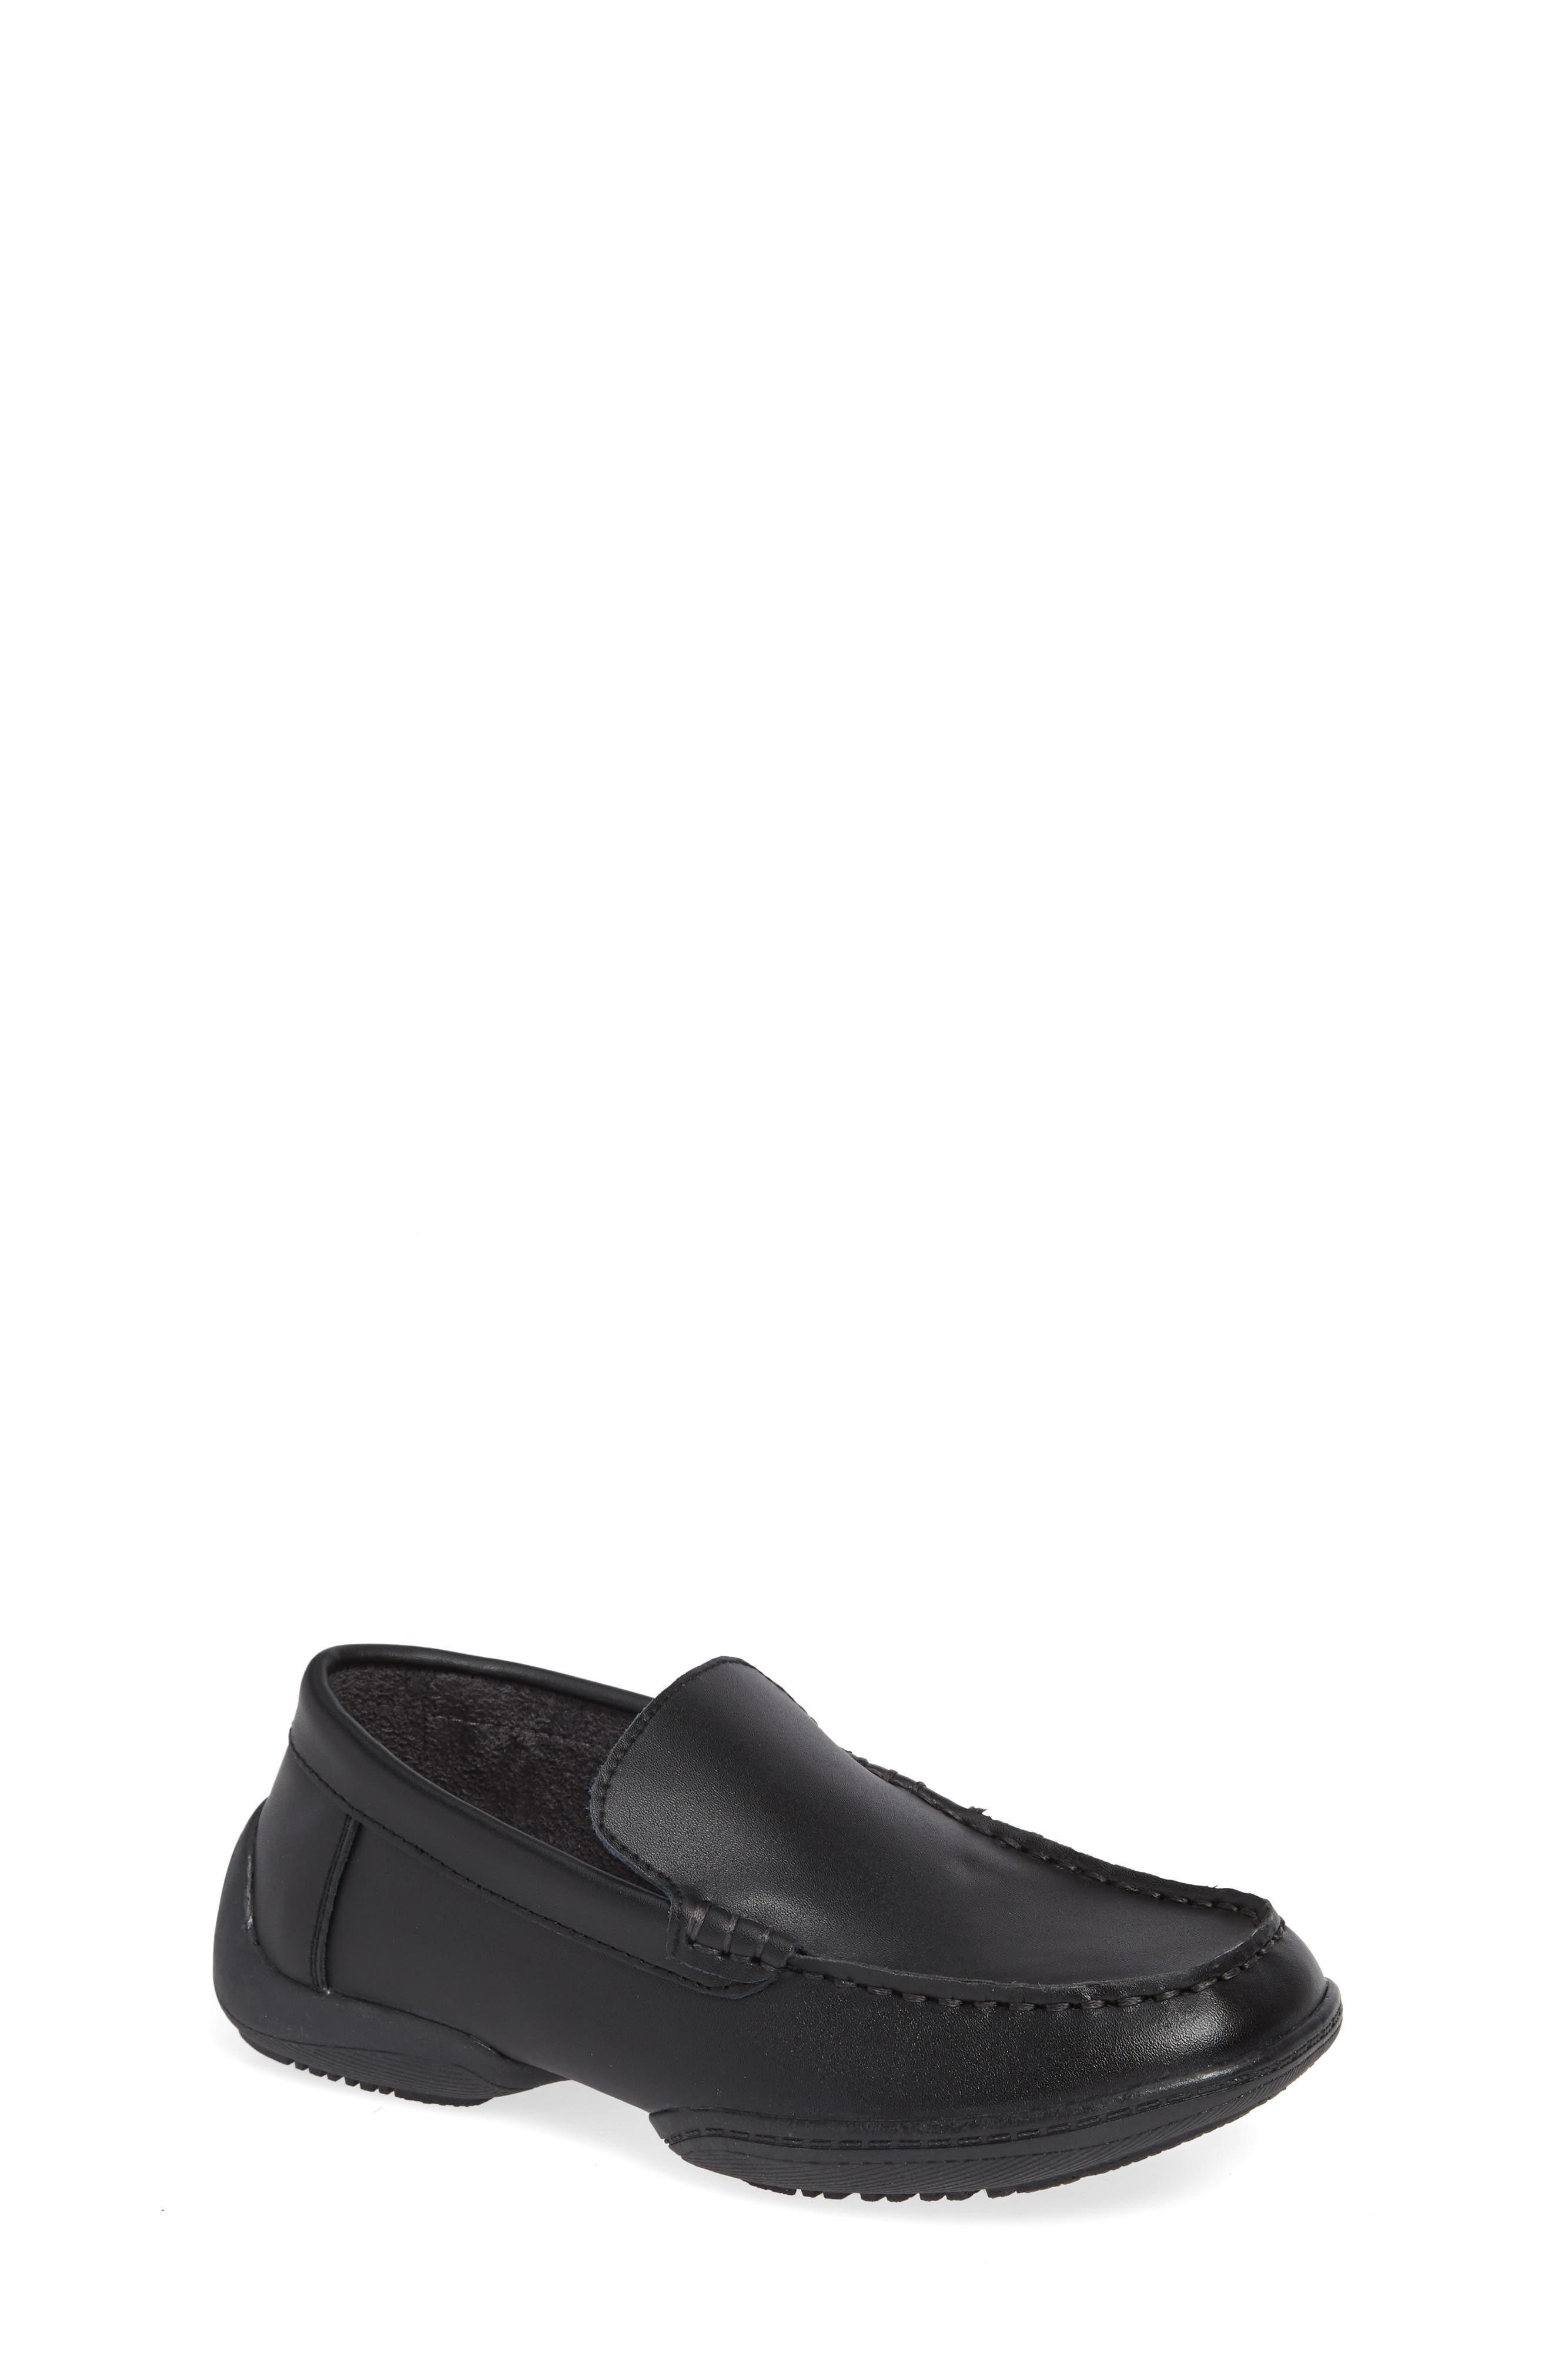 Boys Reaction Kenneth Cole Driving Dime Moccasin Size 6 M  Black